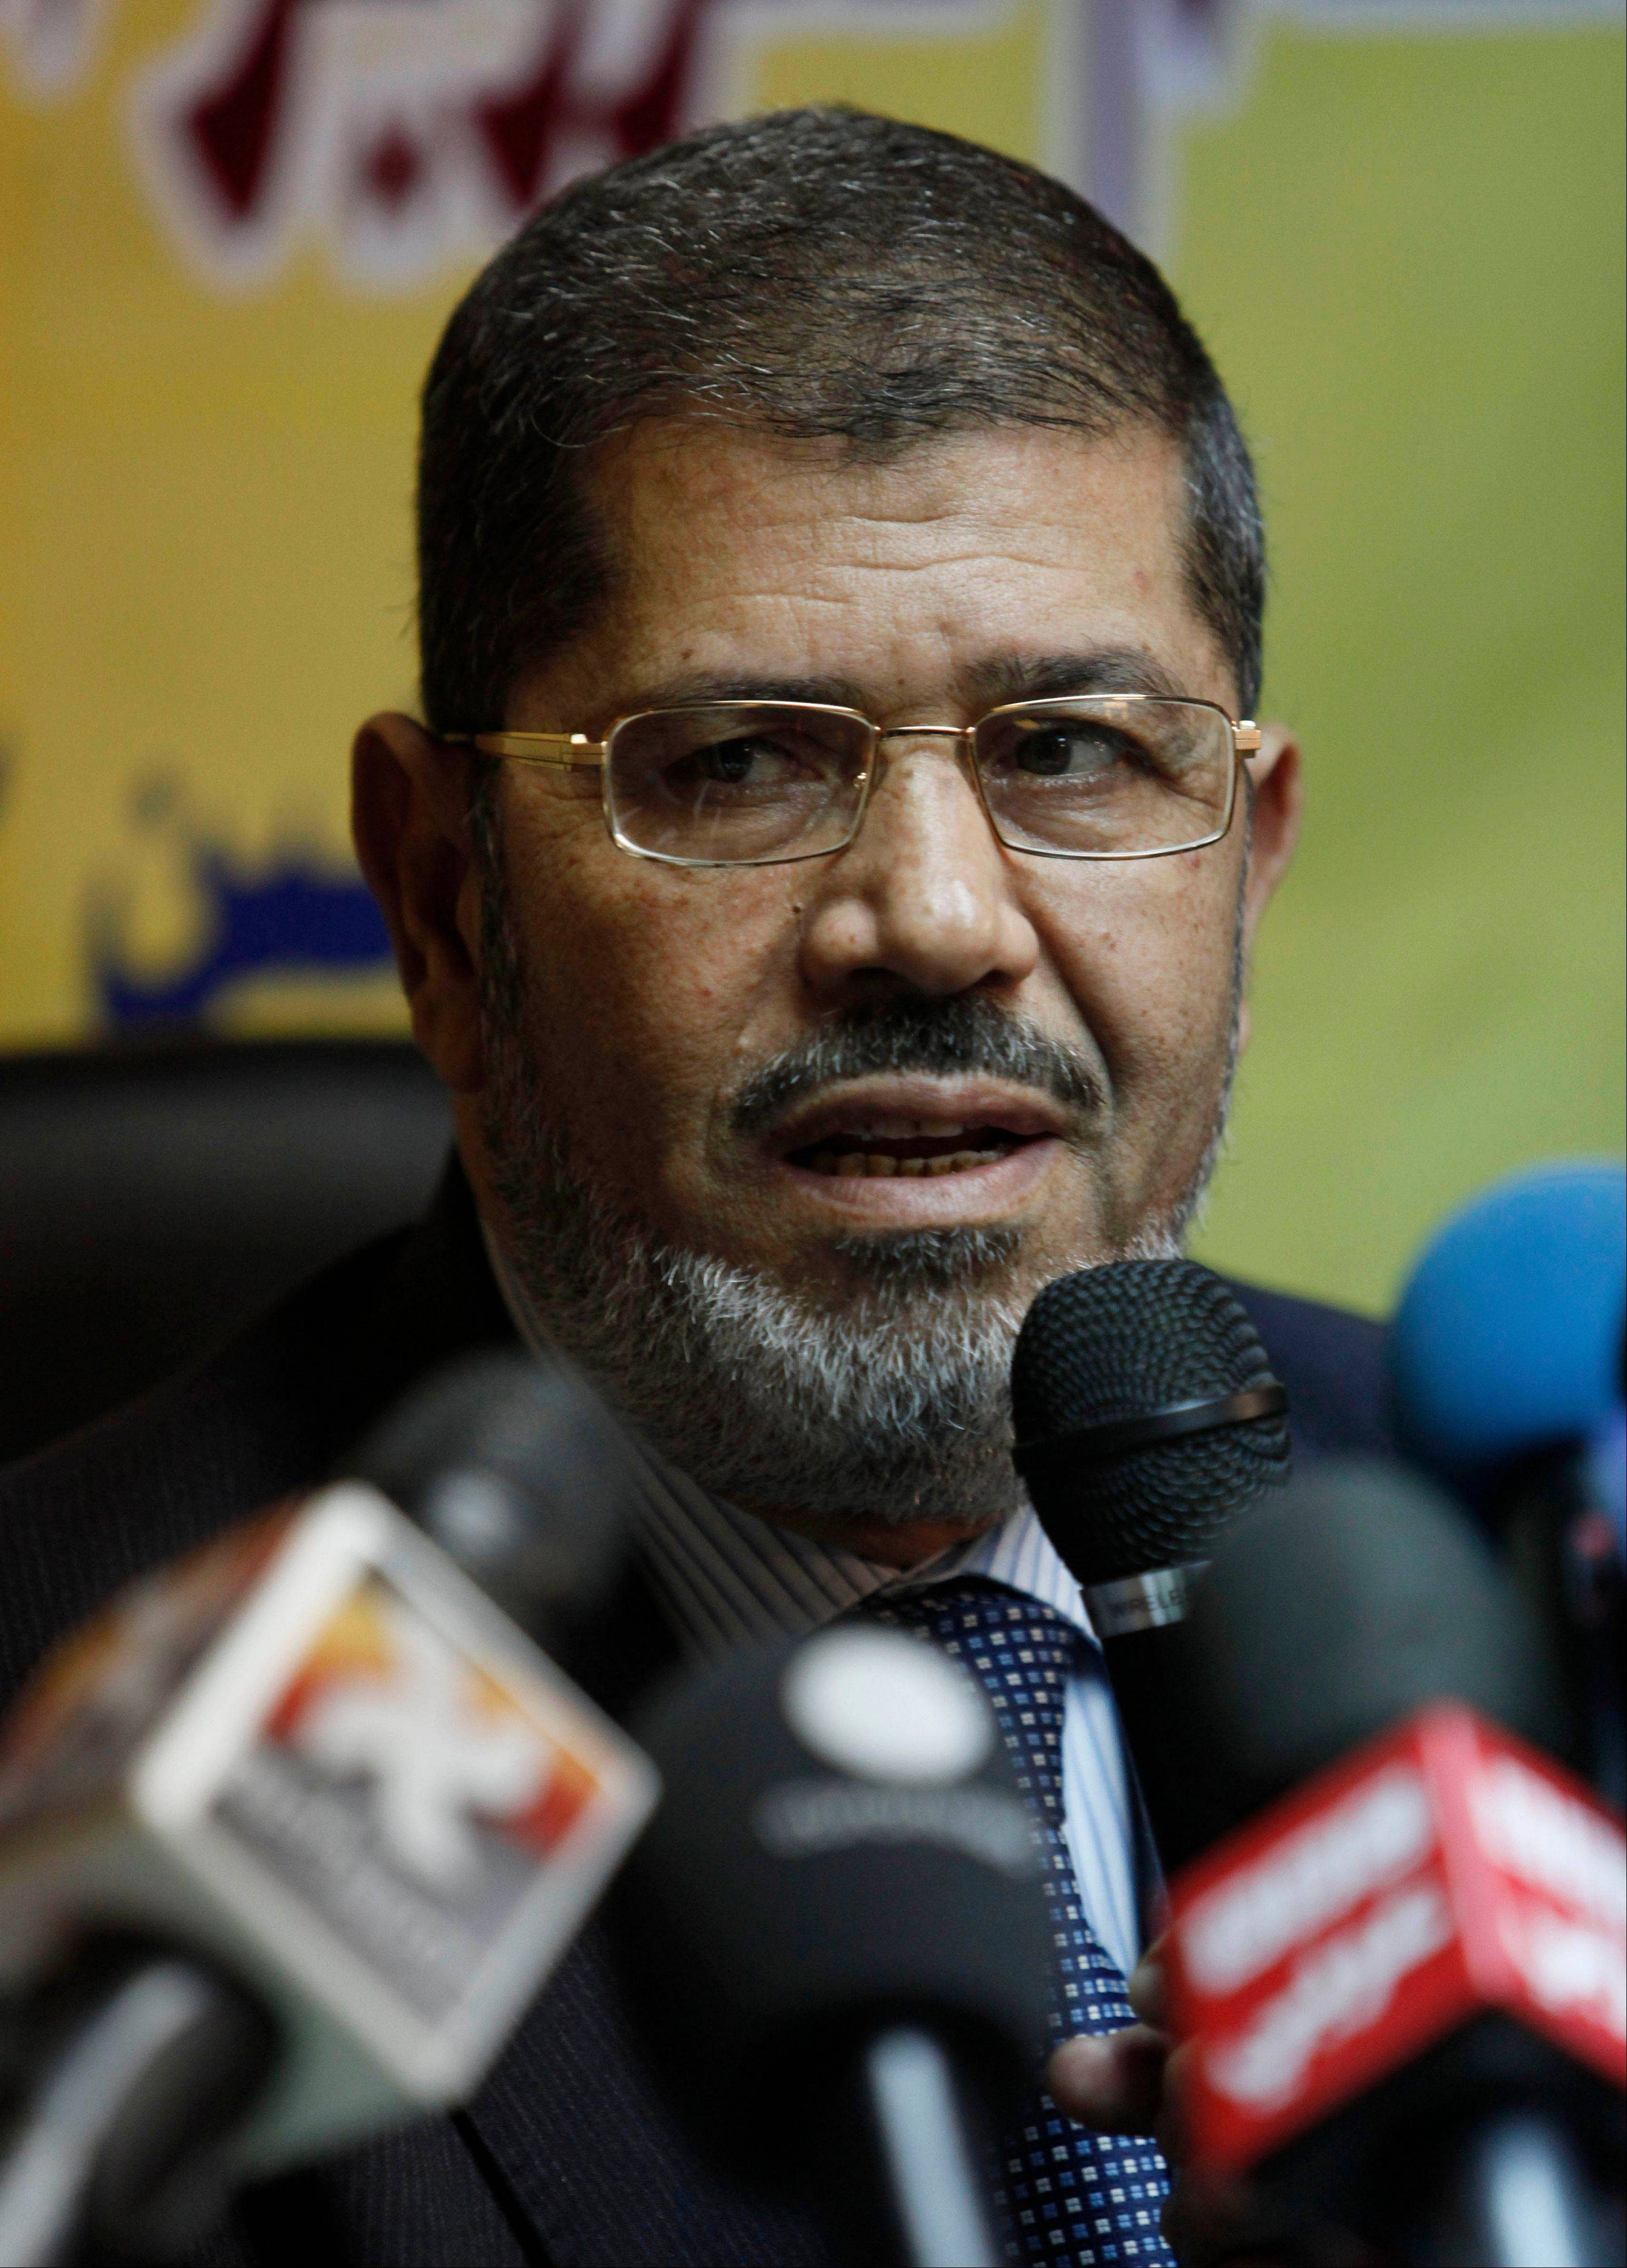 Egypt�s top prosecutor has referred ousted Islamist President Mohammed Morsi to trial on charges of inciting the killing of opponents who were protesting outside his palace while he was in office.